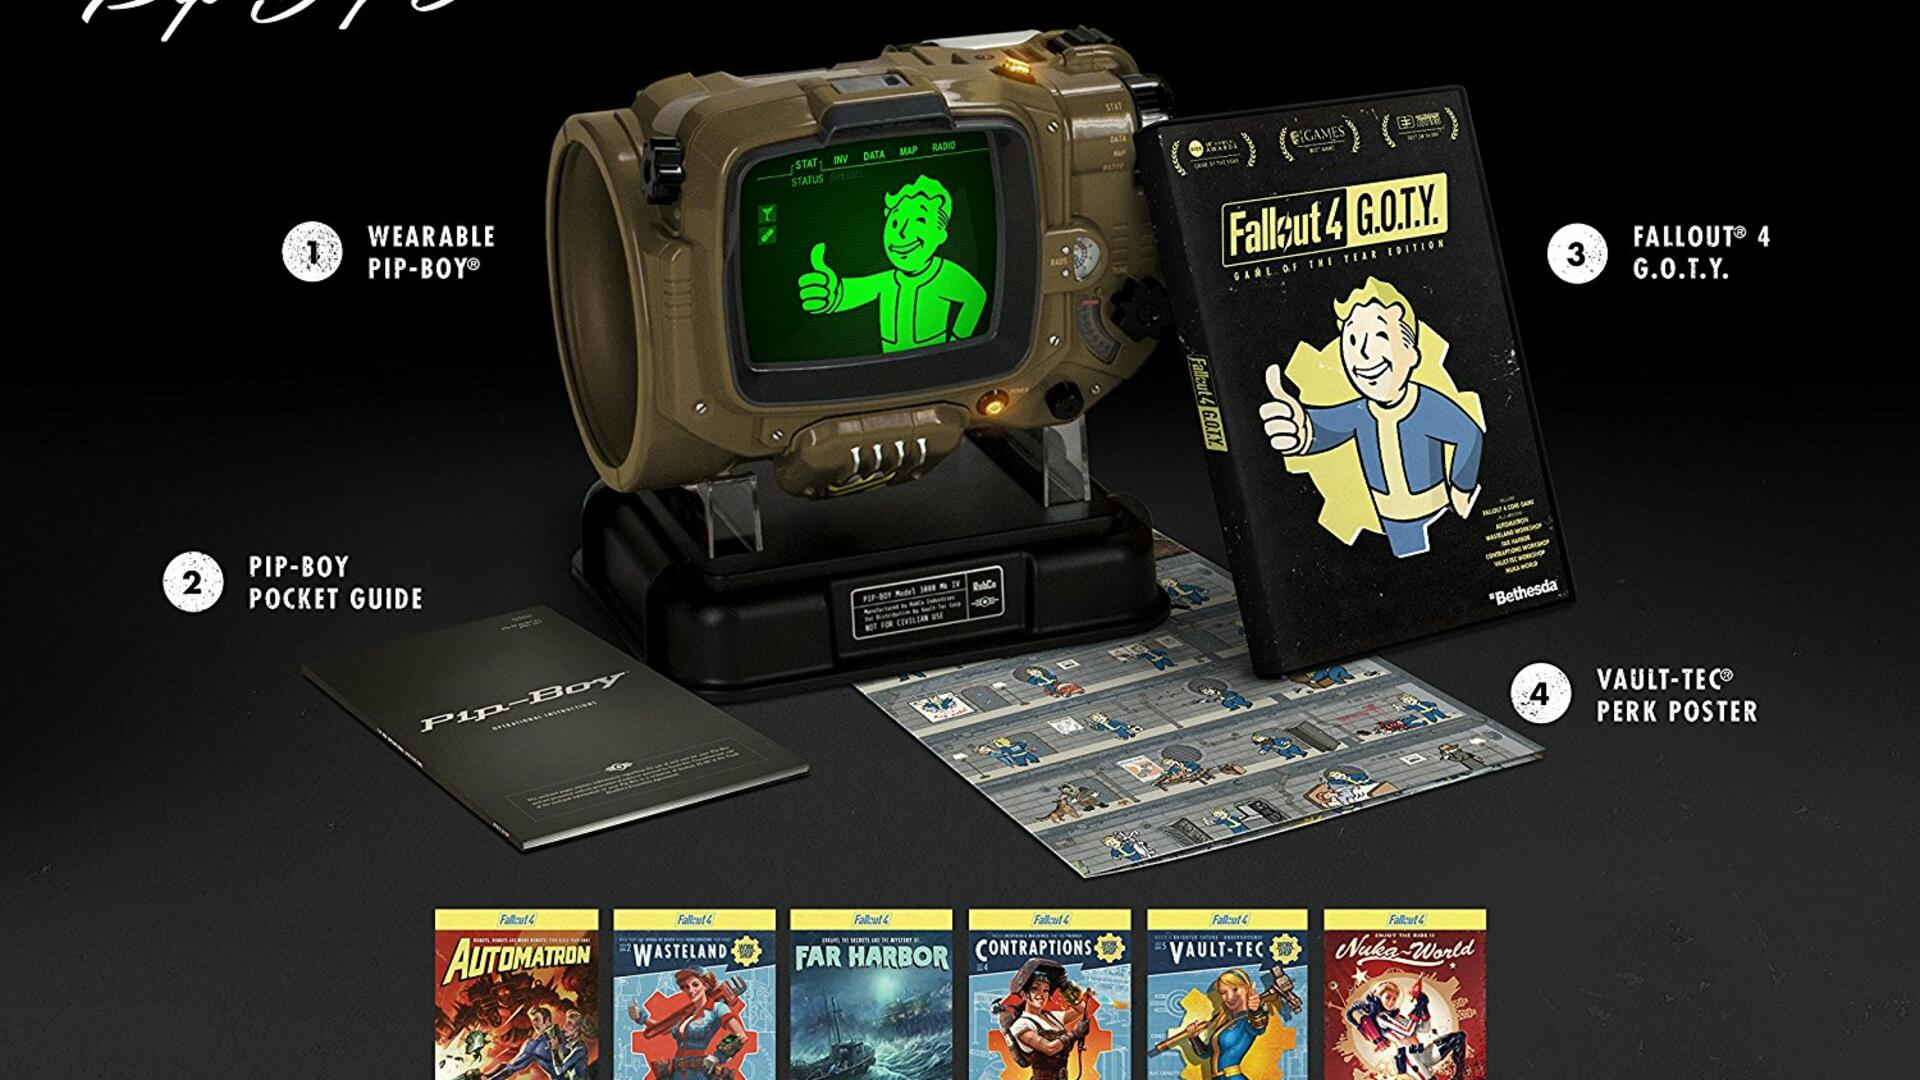 Save $20 on the New Fallout 4 GOTY Pip-Boy Edition